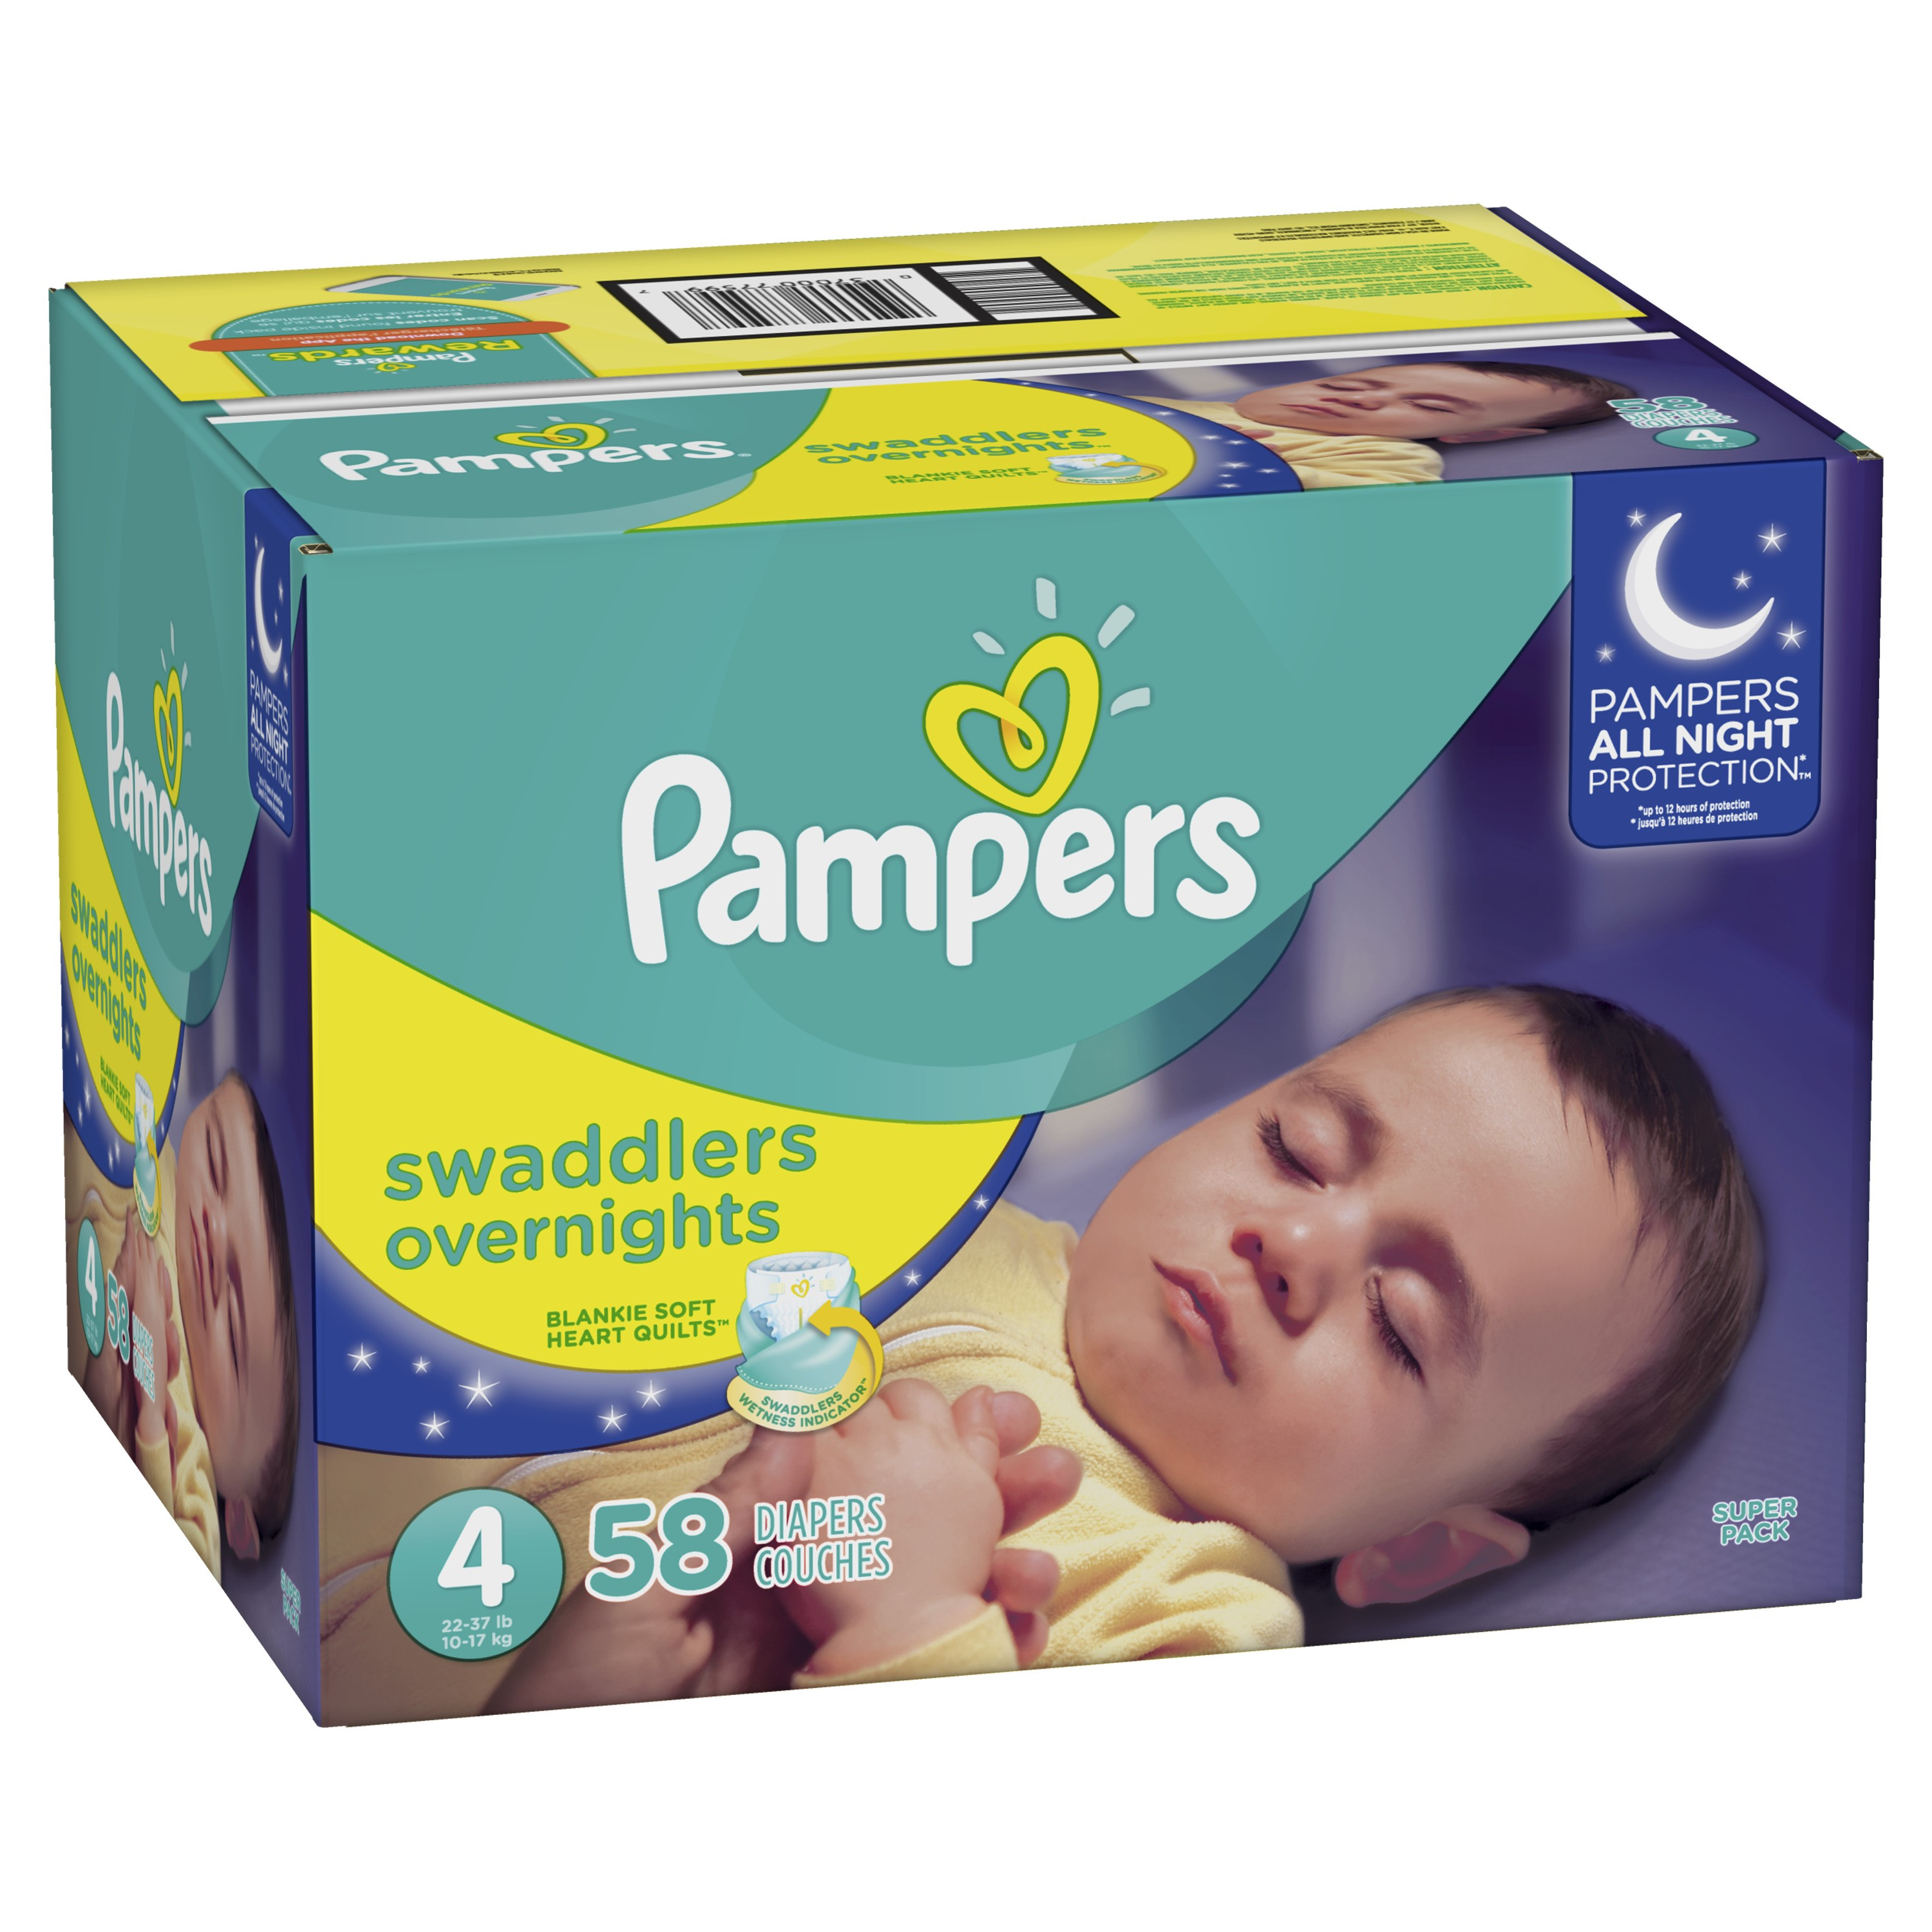 Pampers® Swaddlers™ Overnights Diapers Size 4 58 ct